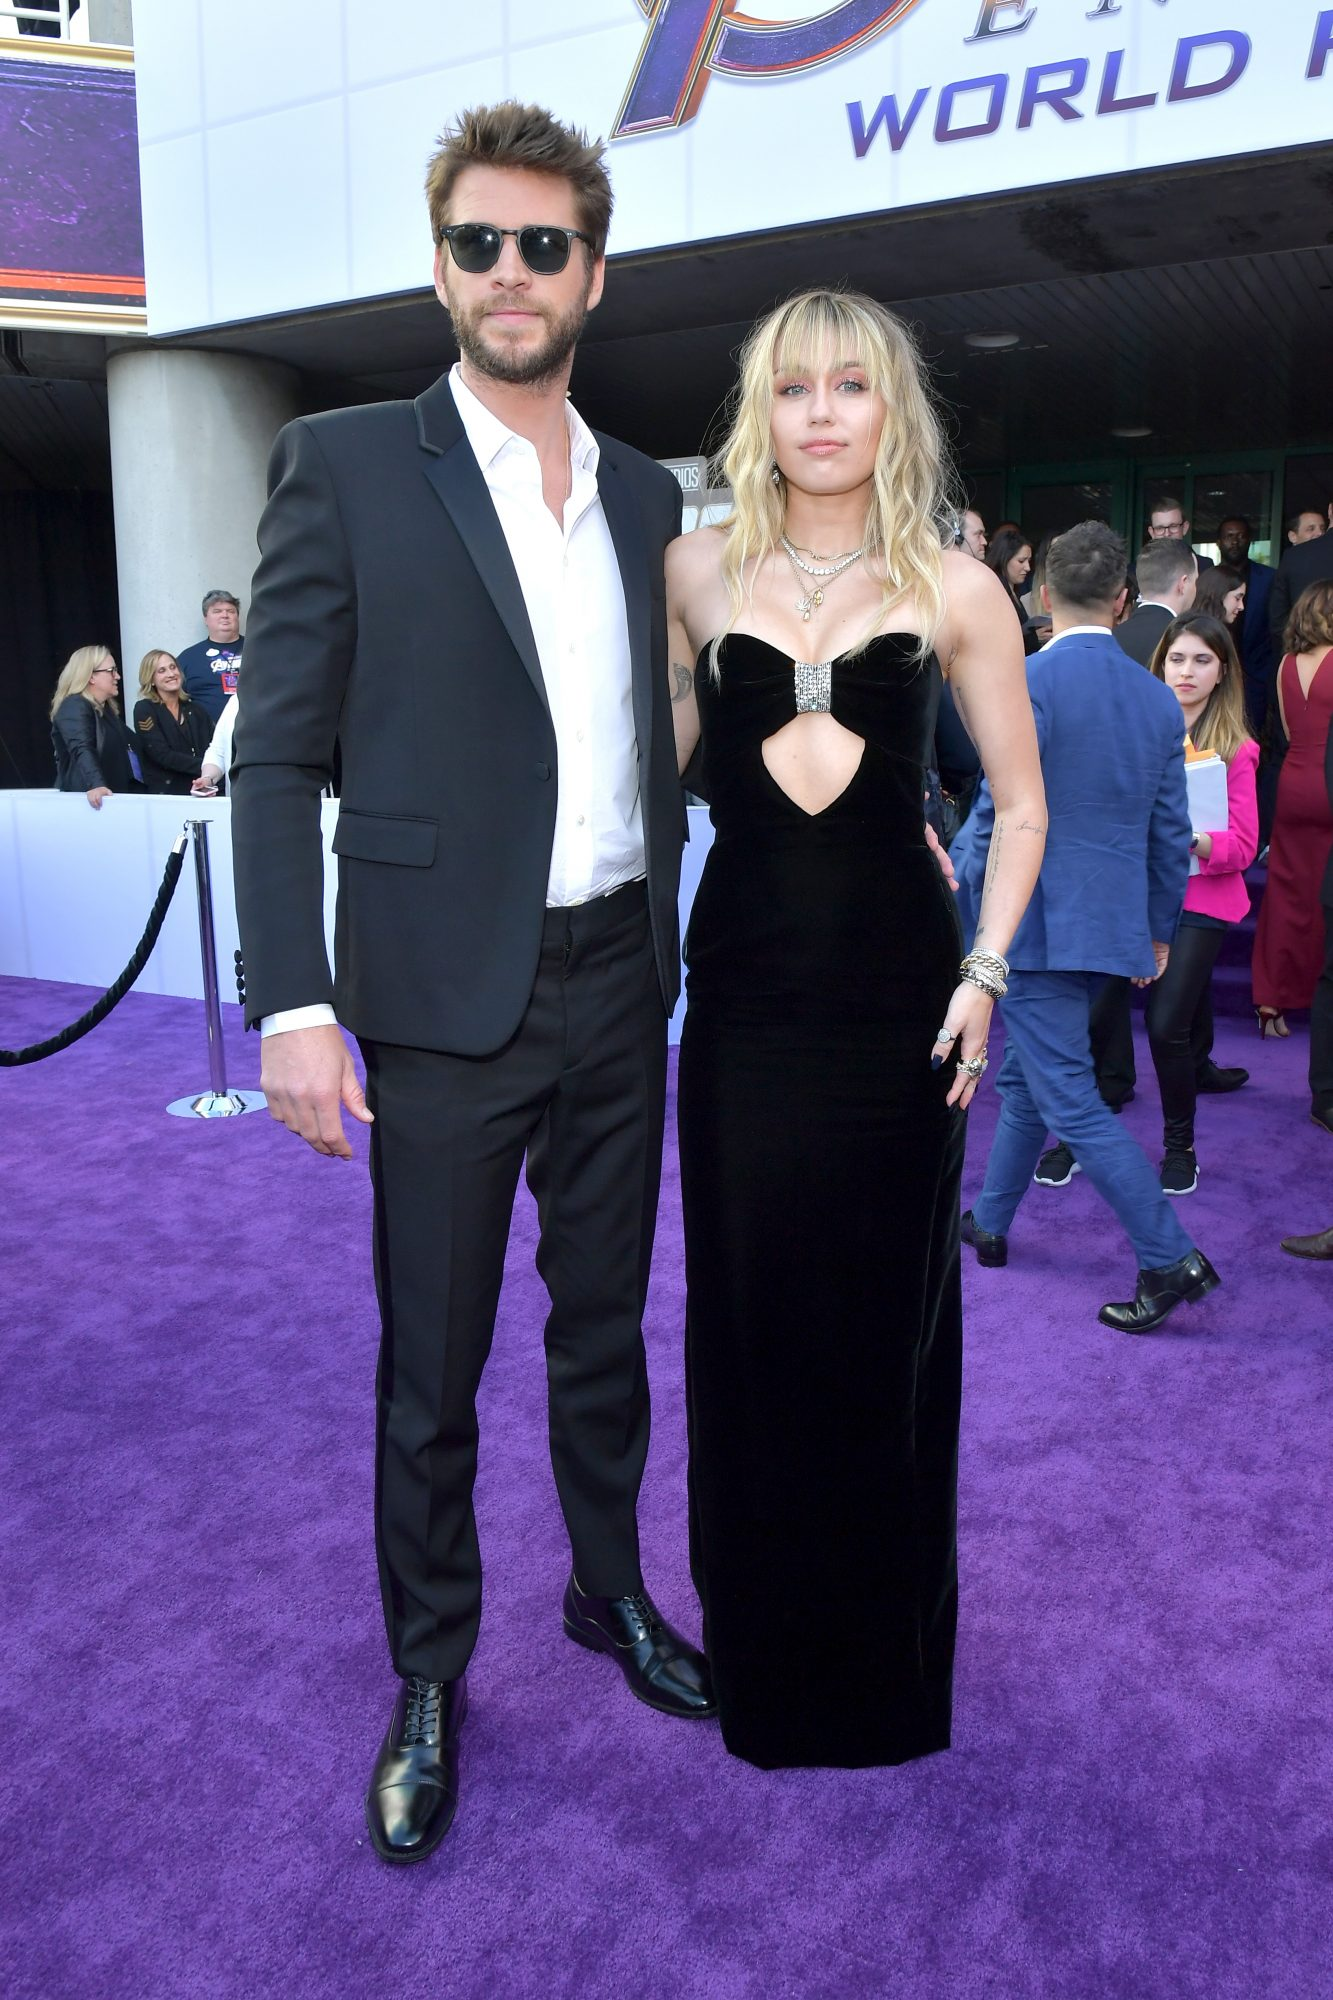 """Liam Hemsworth and Miley Cyrus attend the world premiere of Walt Disney Studios Motion Pictures """"Avengers: Endgame"""" at the Los Angeles Convention Center on April 22, 2019 in Los Angeles, California. (Photo by Amy Sussman/Getty Images)"""